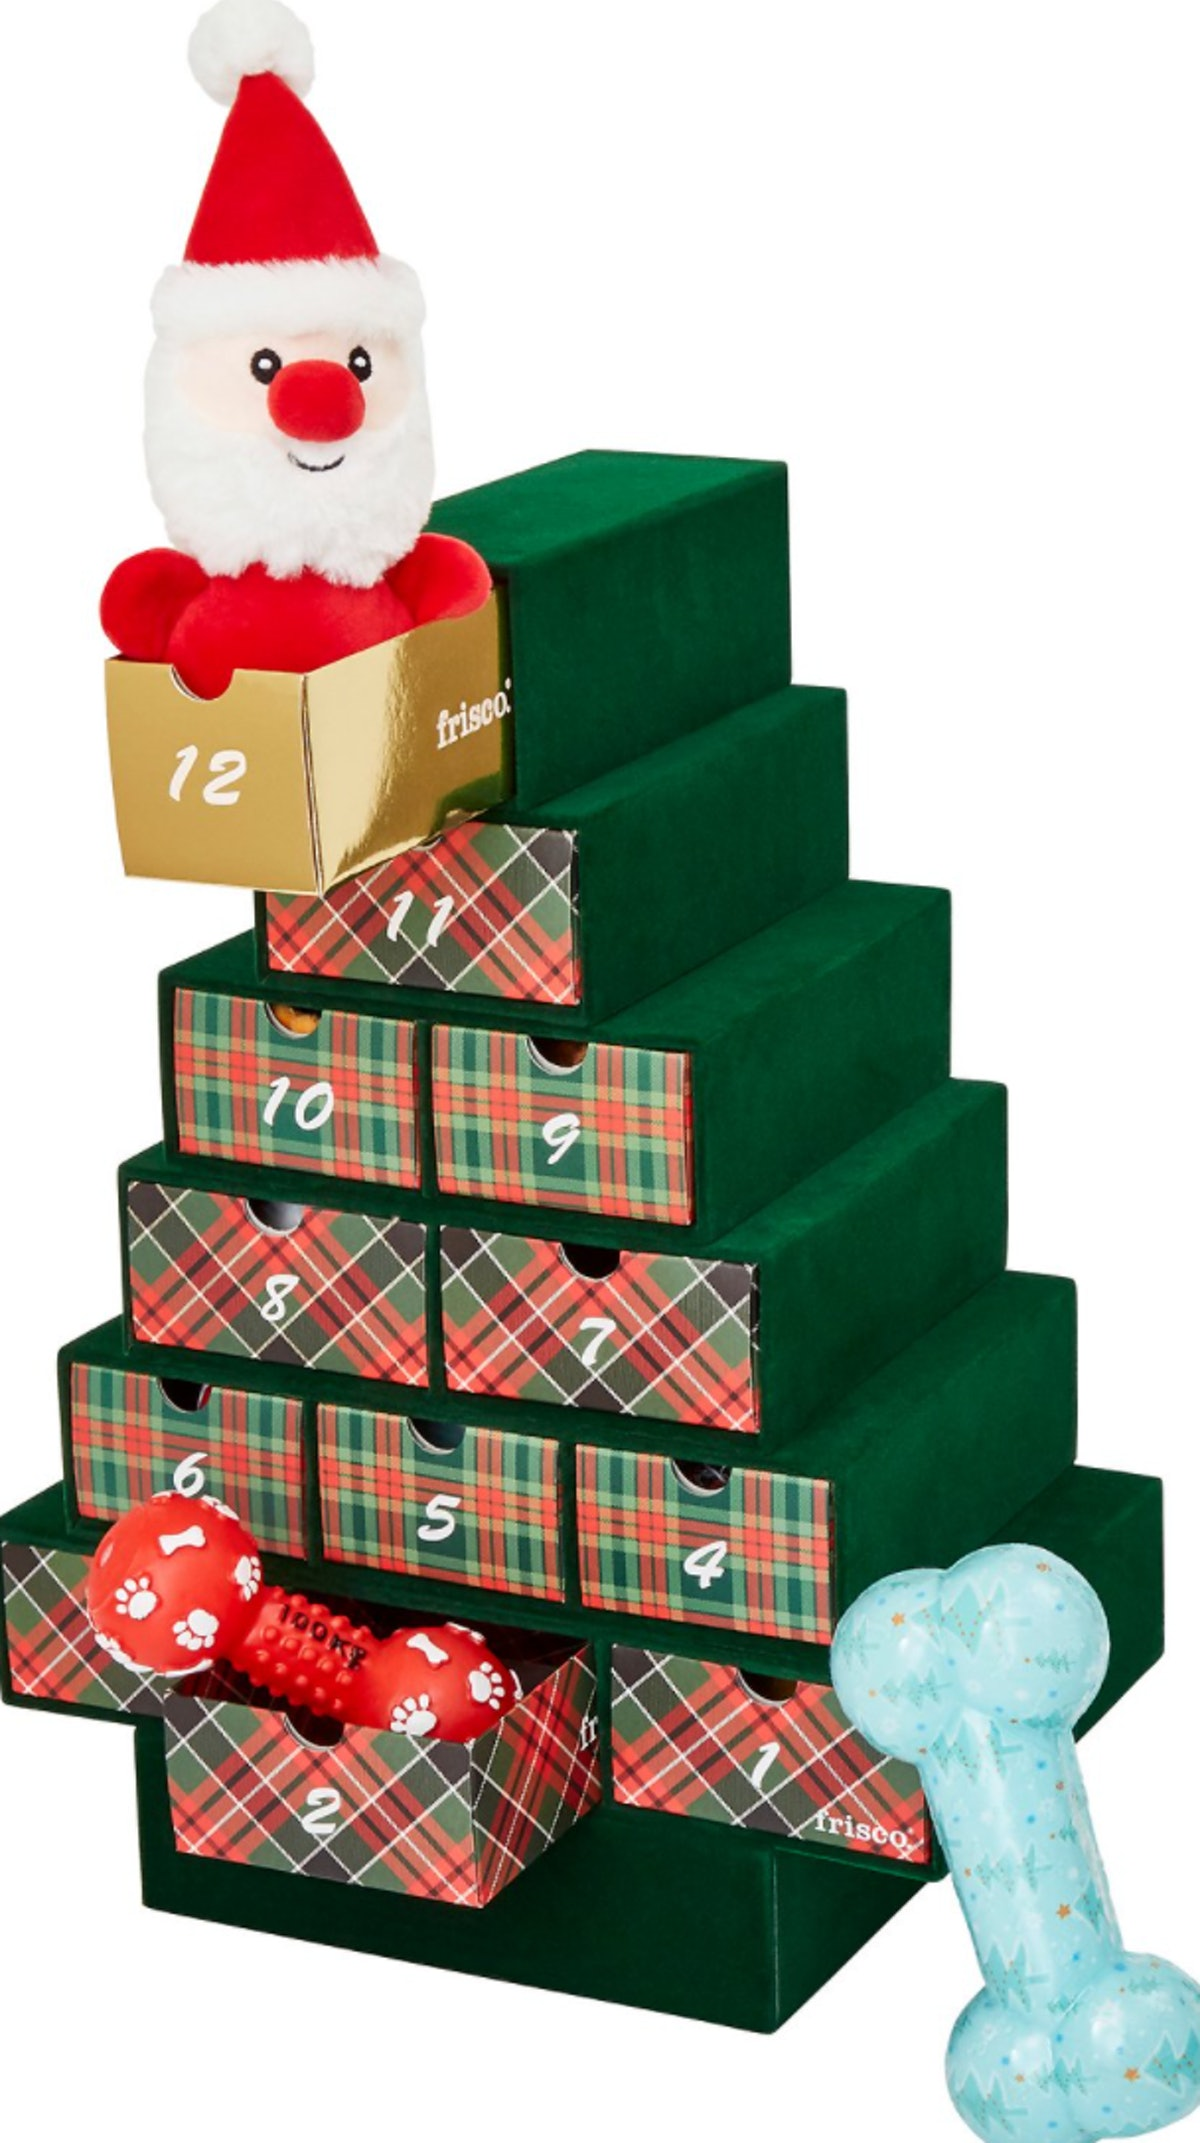 Frisco Holiday 12 Days of Christmas Advent Calendar with Toys for Dogs